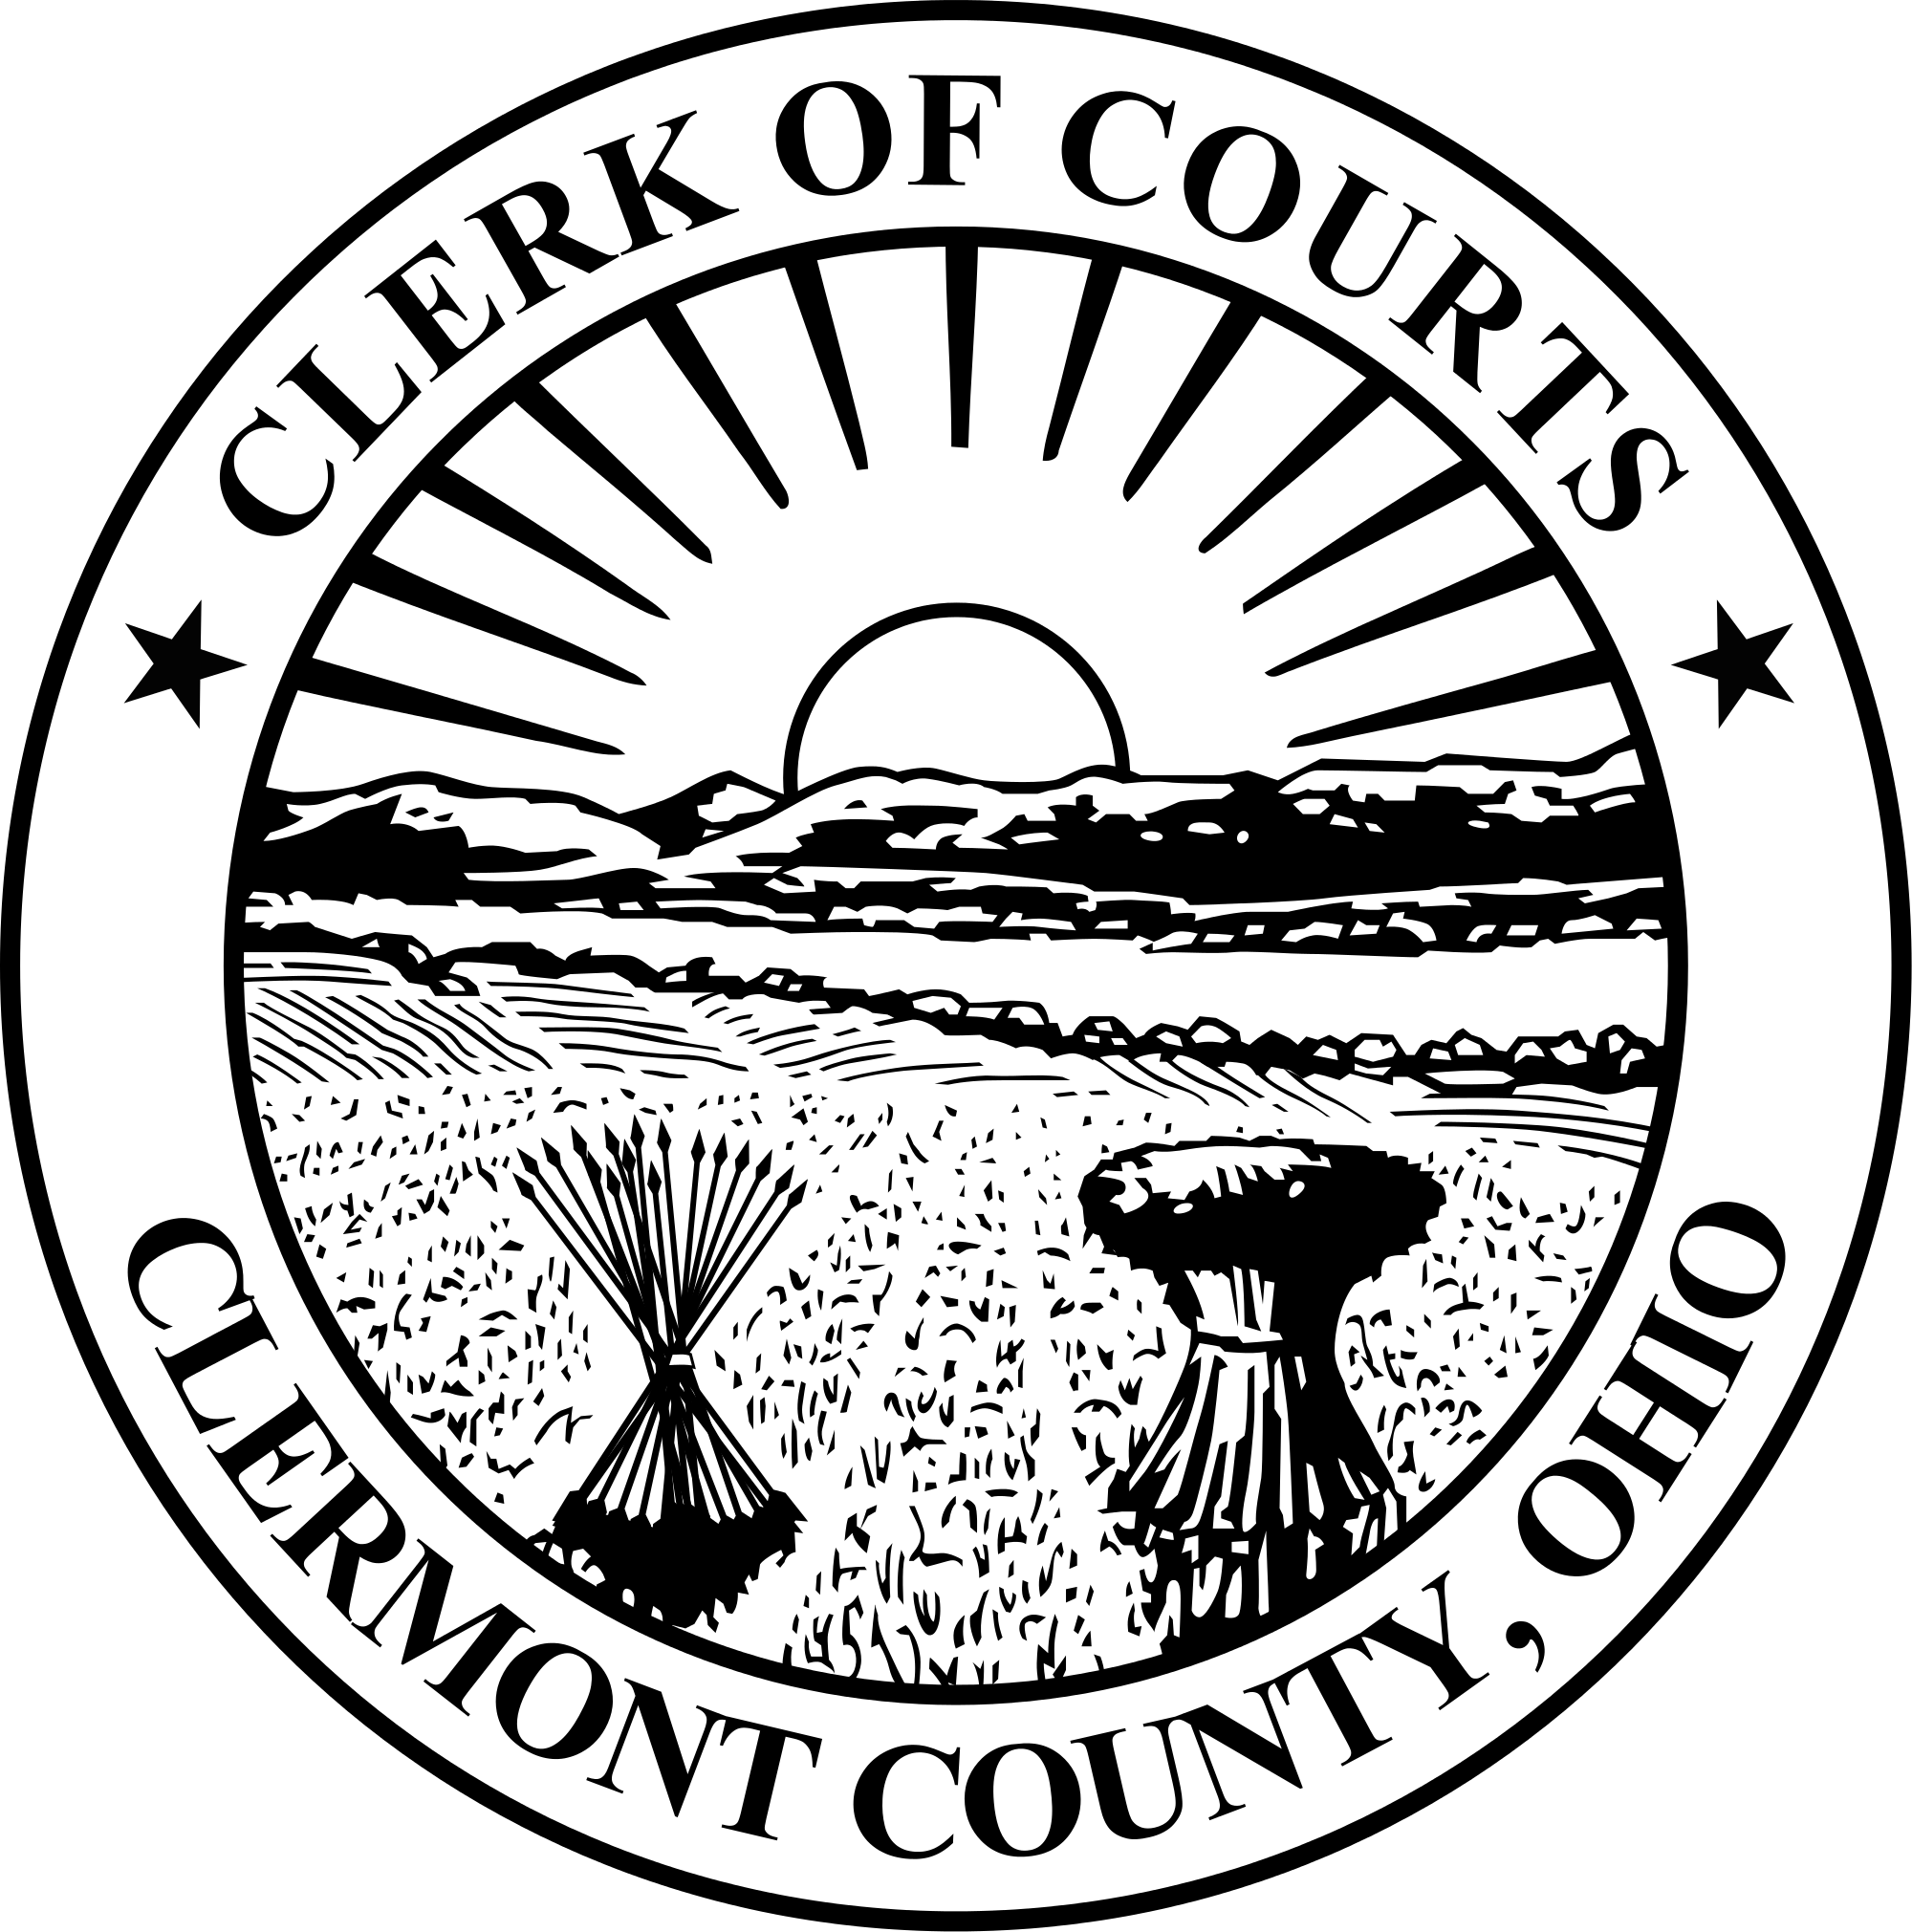 courts svg clermont county